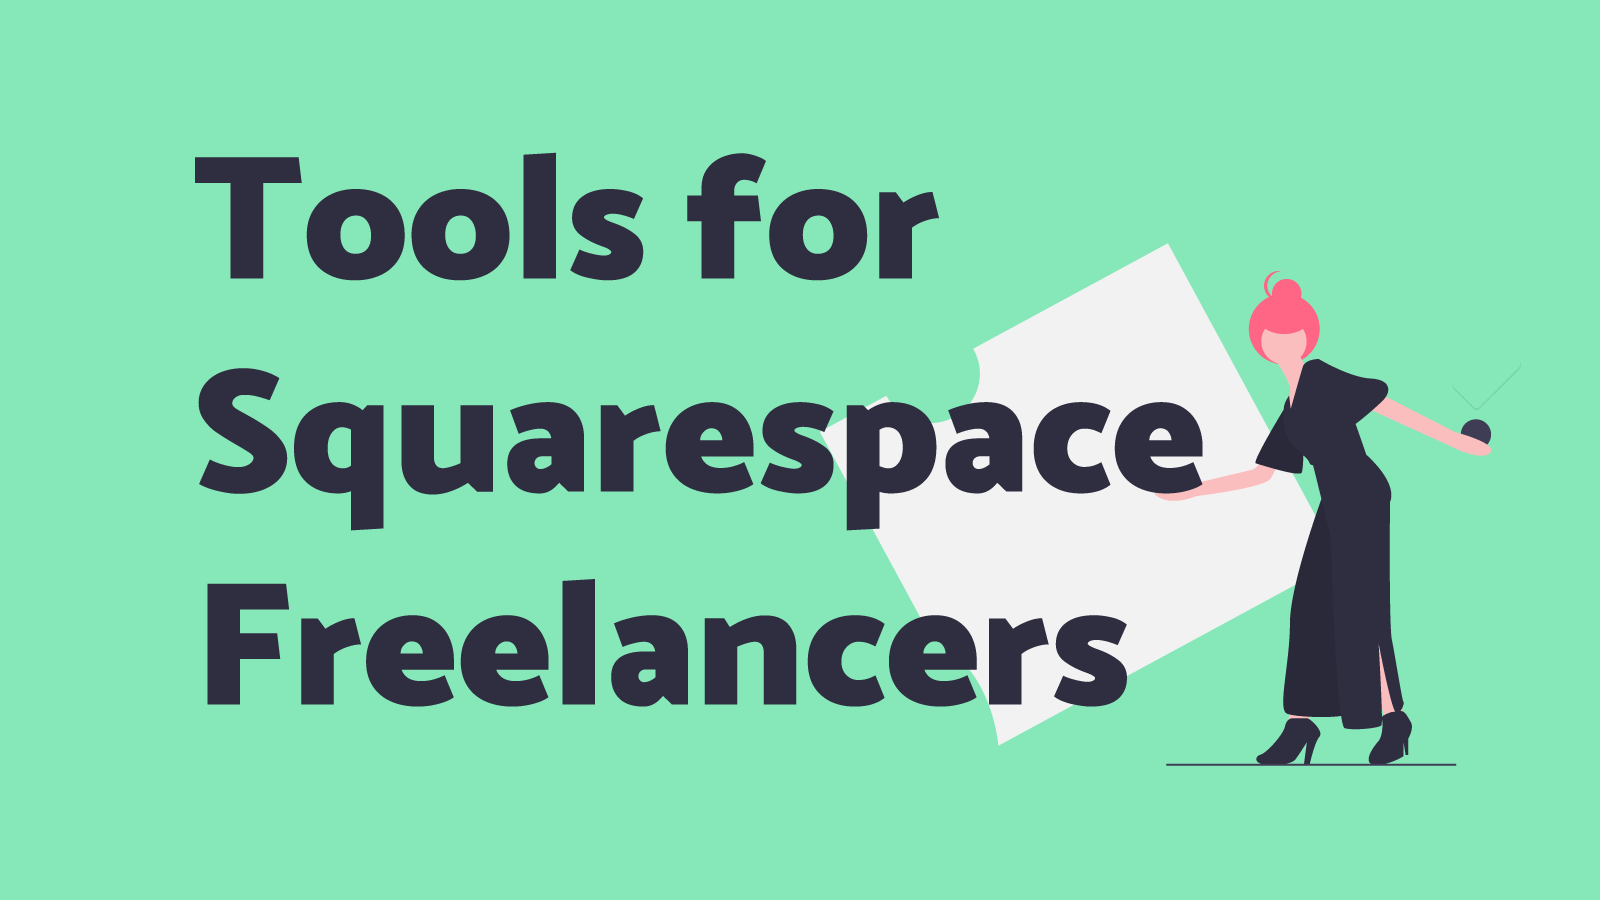 Resources for Squarespace Freelancers